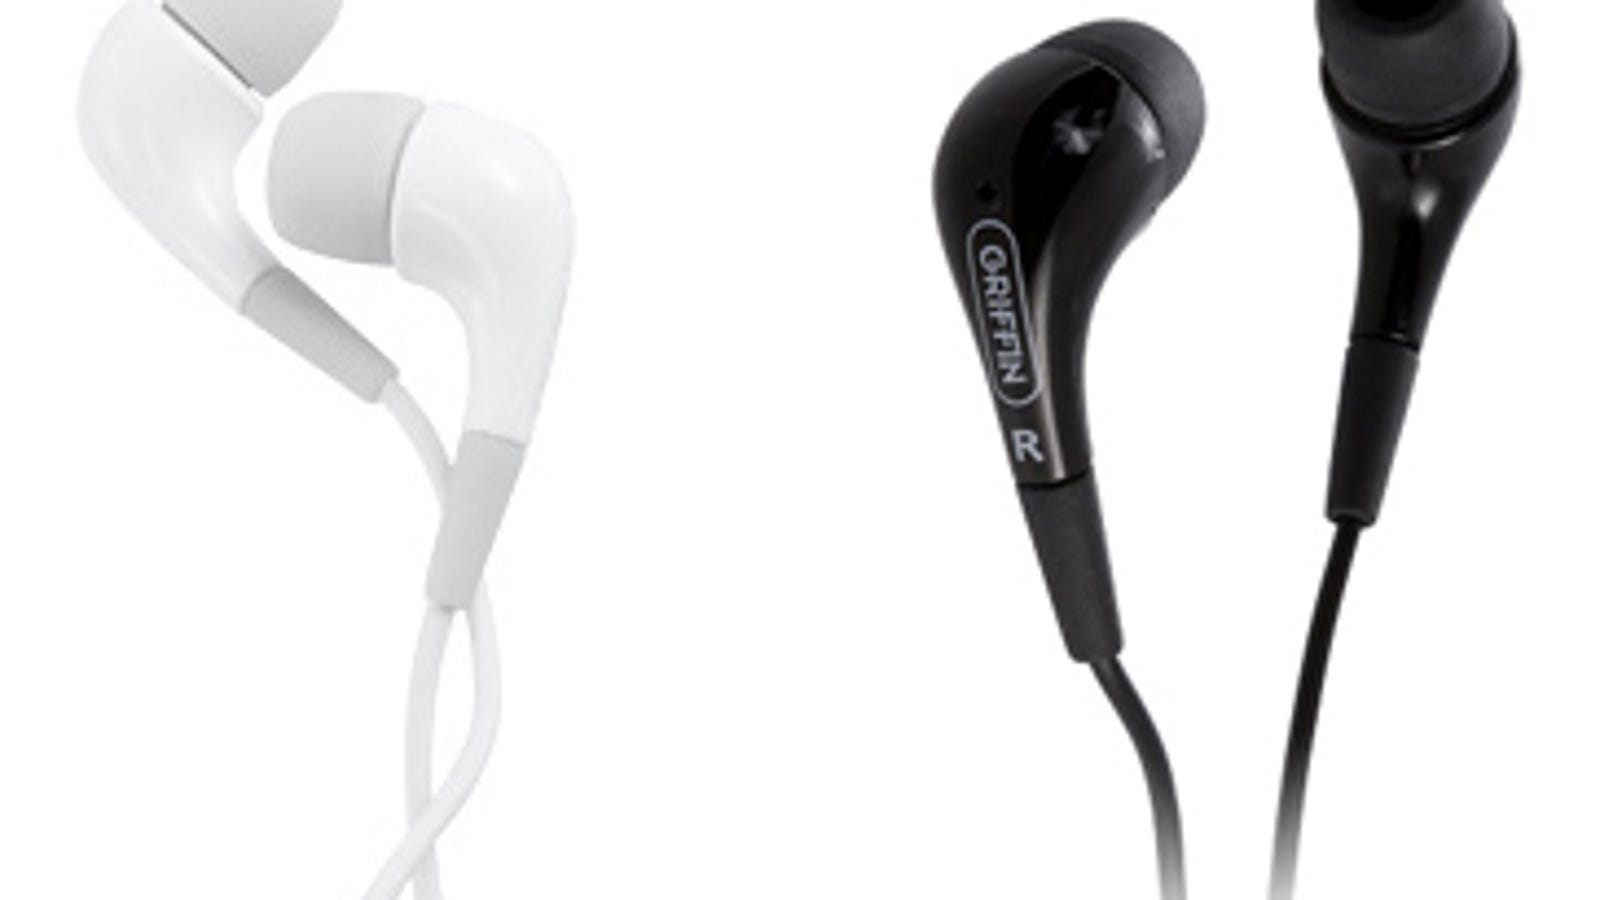 earbuds with built in splitter - Breaking News: Griffin Releases More iPod Accessories